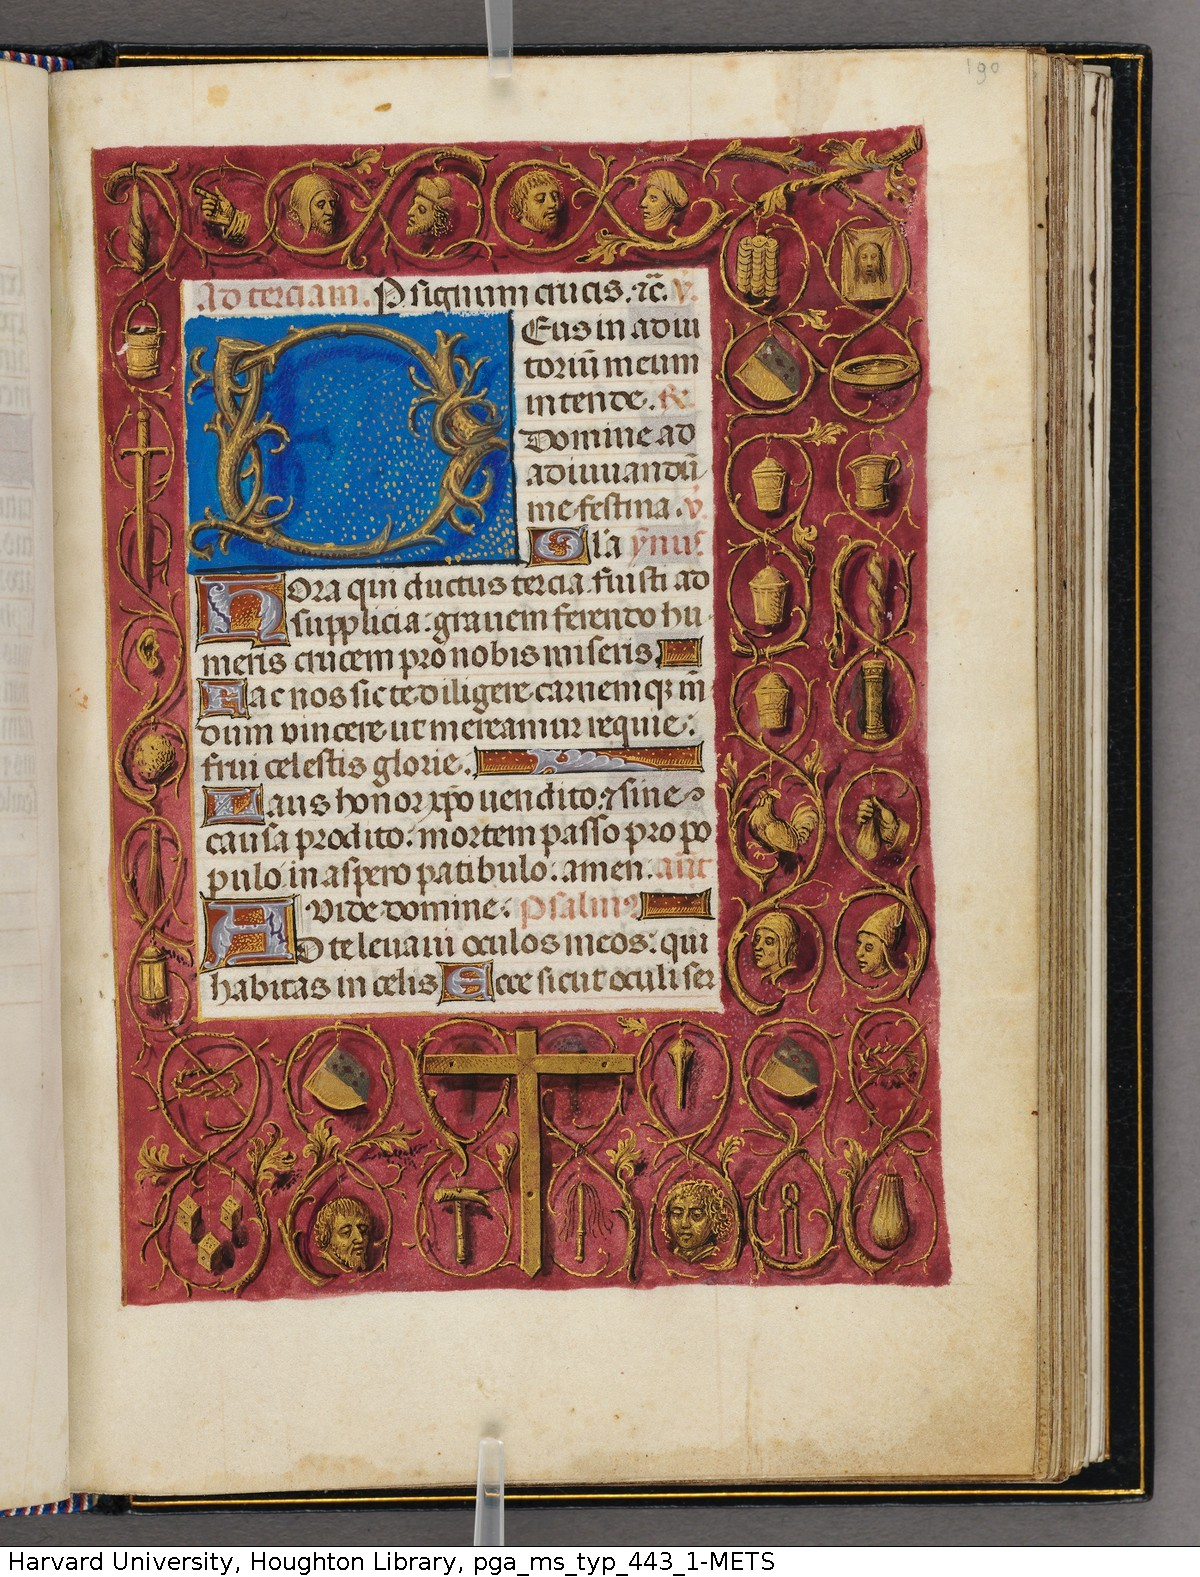 Emerson-White Hours use of Rome 1480 ca Harvard University, Houghton Library, MSS Typ 443.1 fol 190